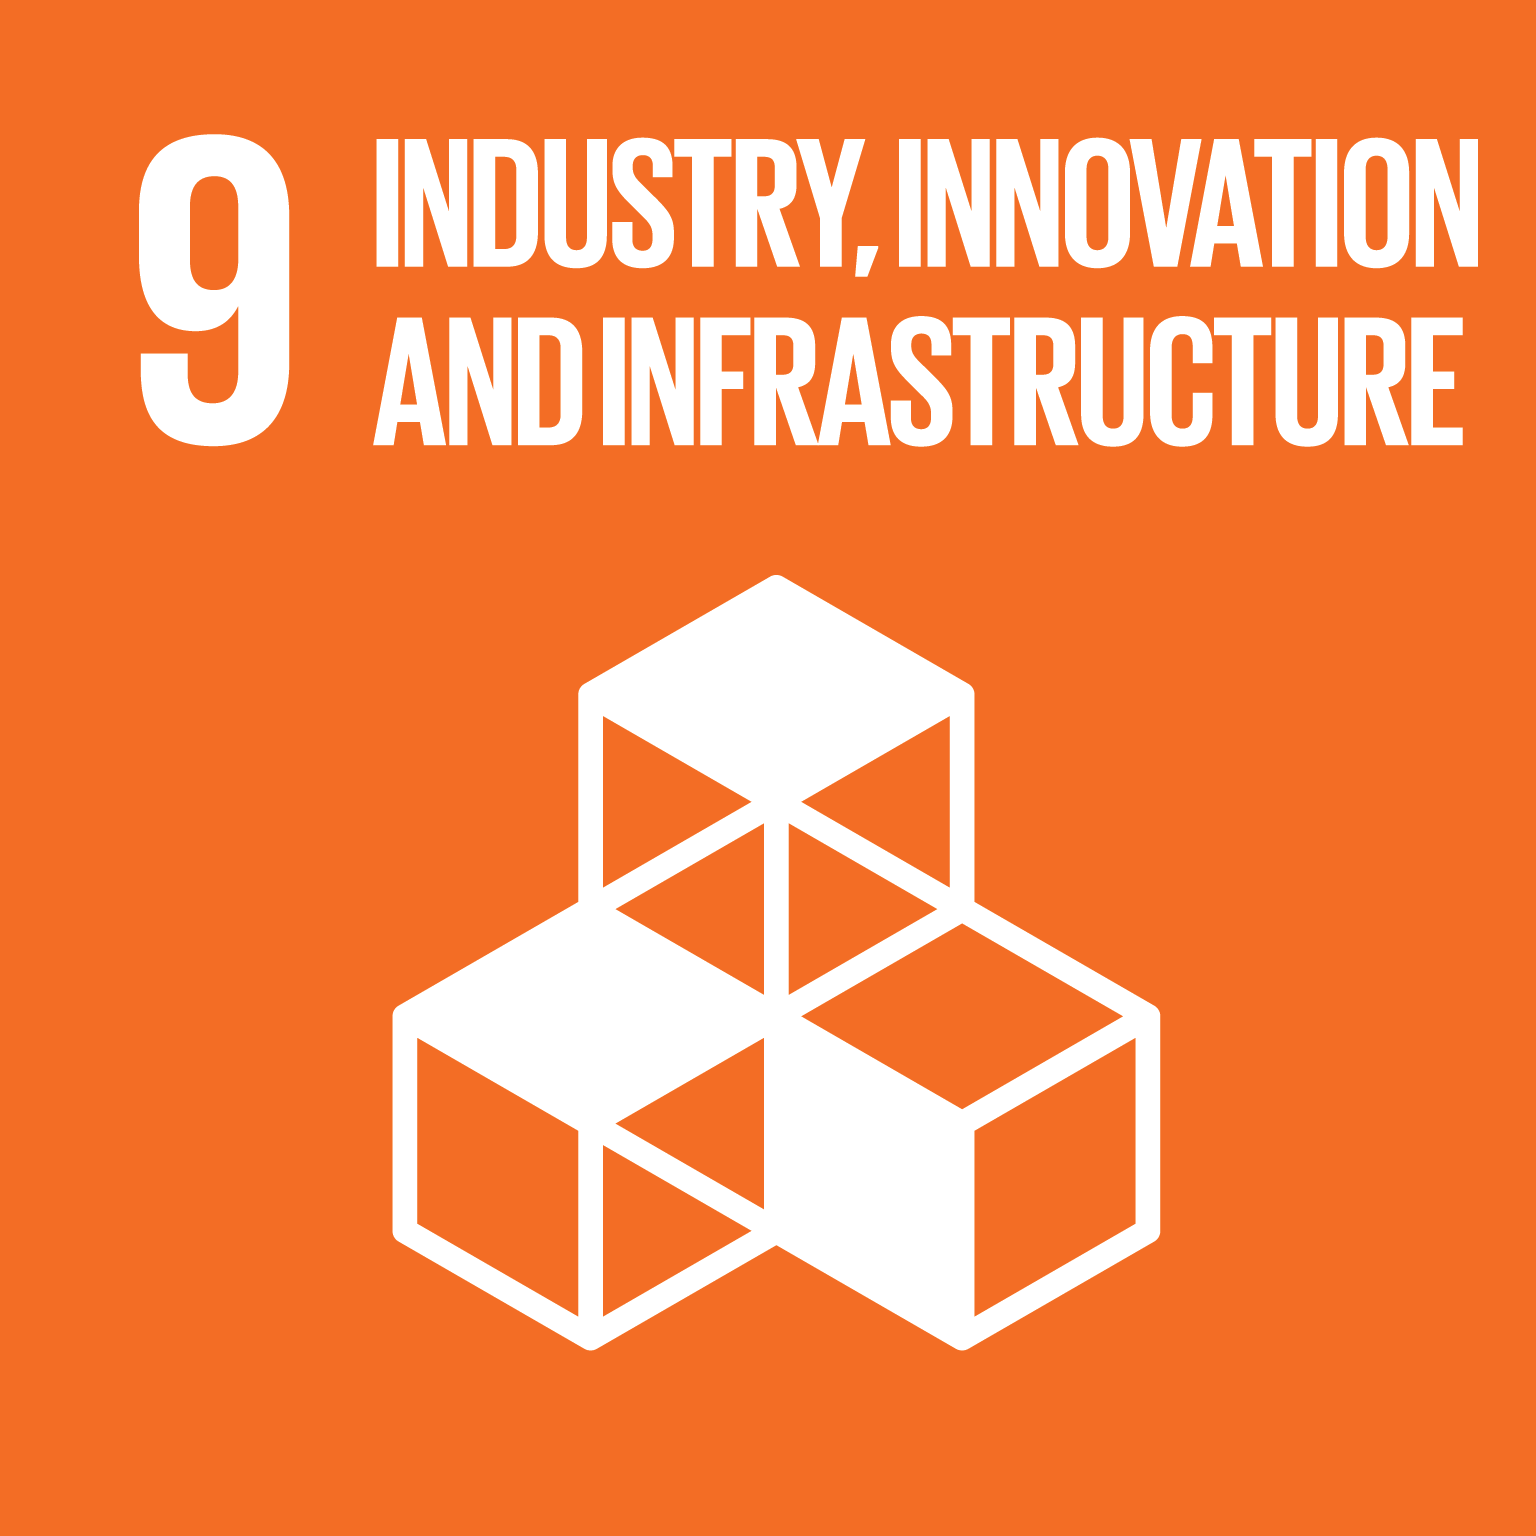 industry innovation and infrastructure icon